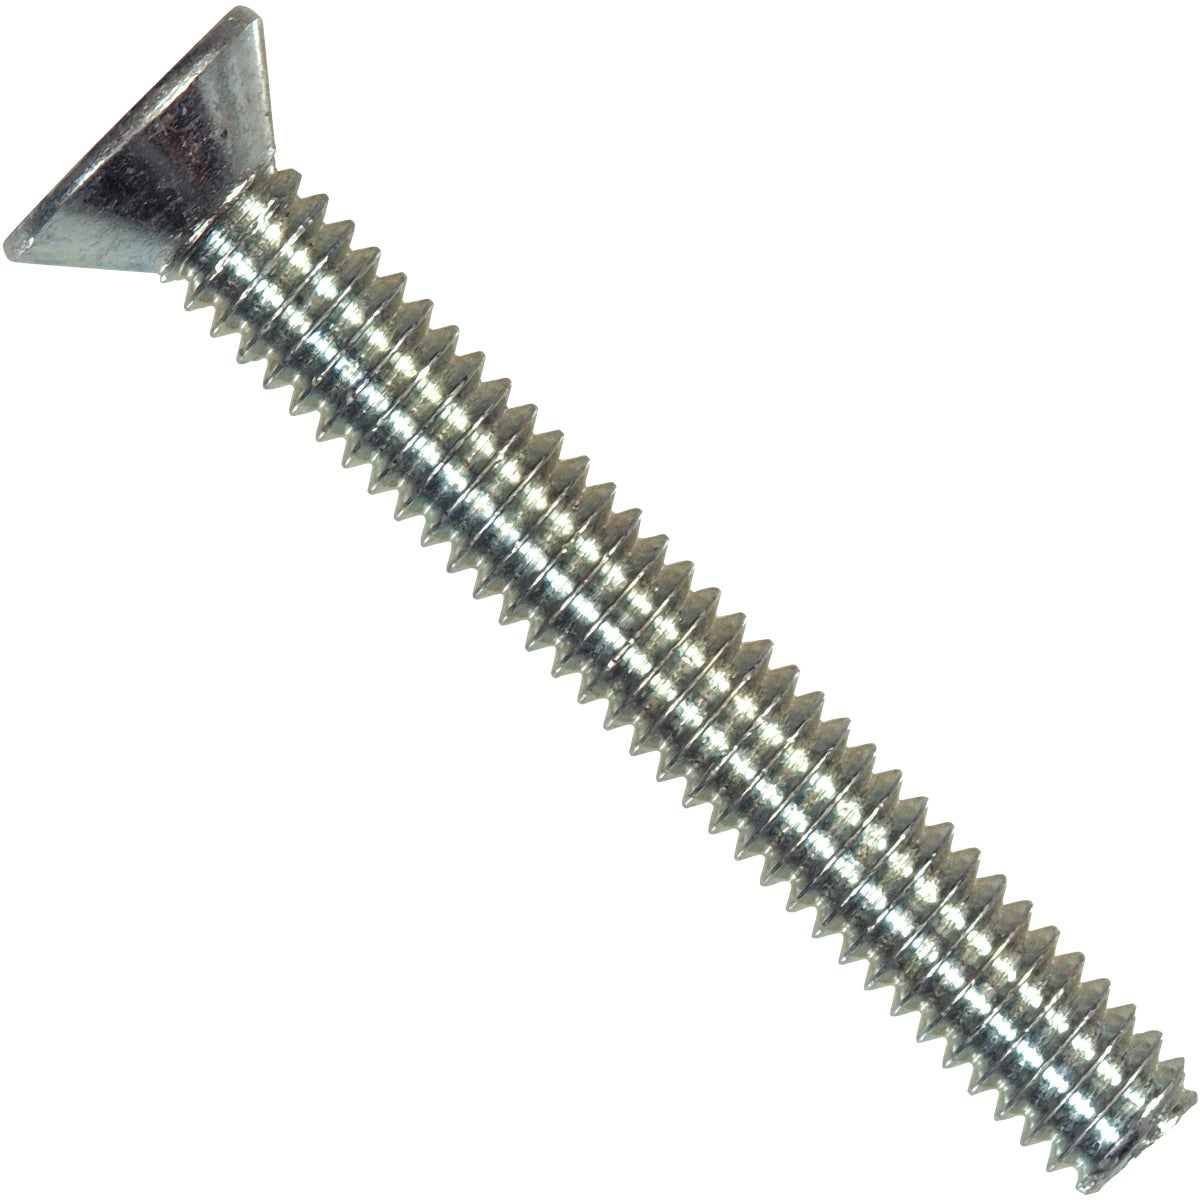 1/4-20X1-1/2 MACH SCREW - 101141 by Hillman Fastener